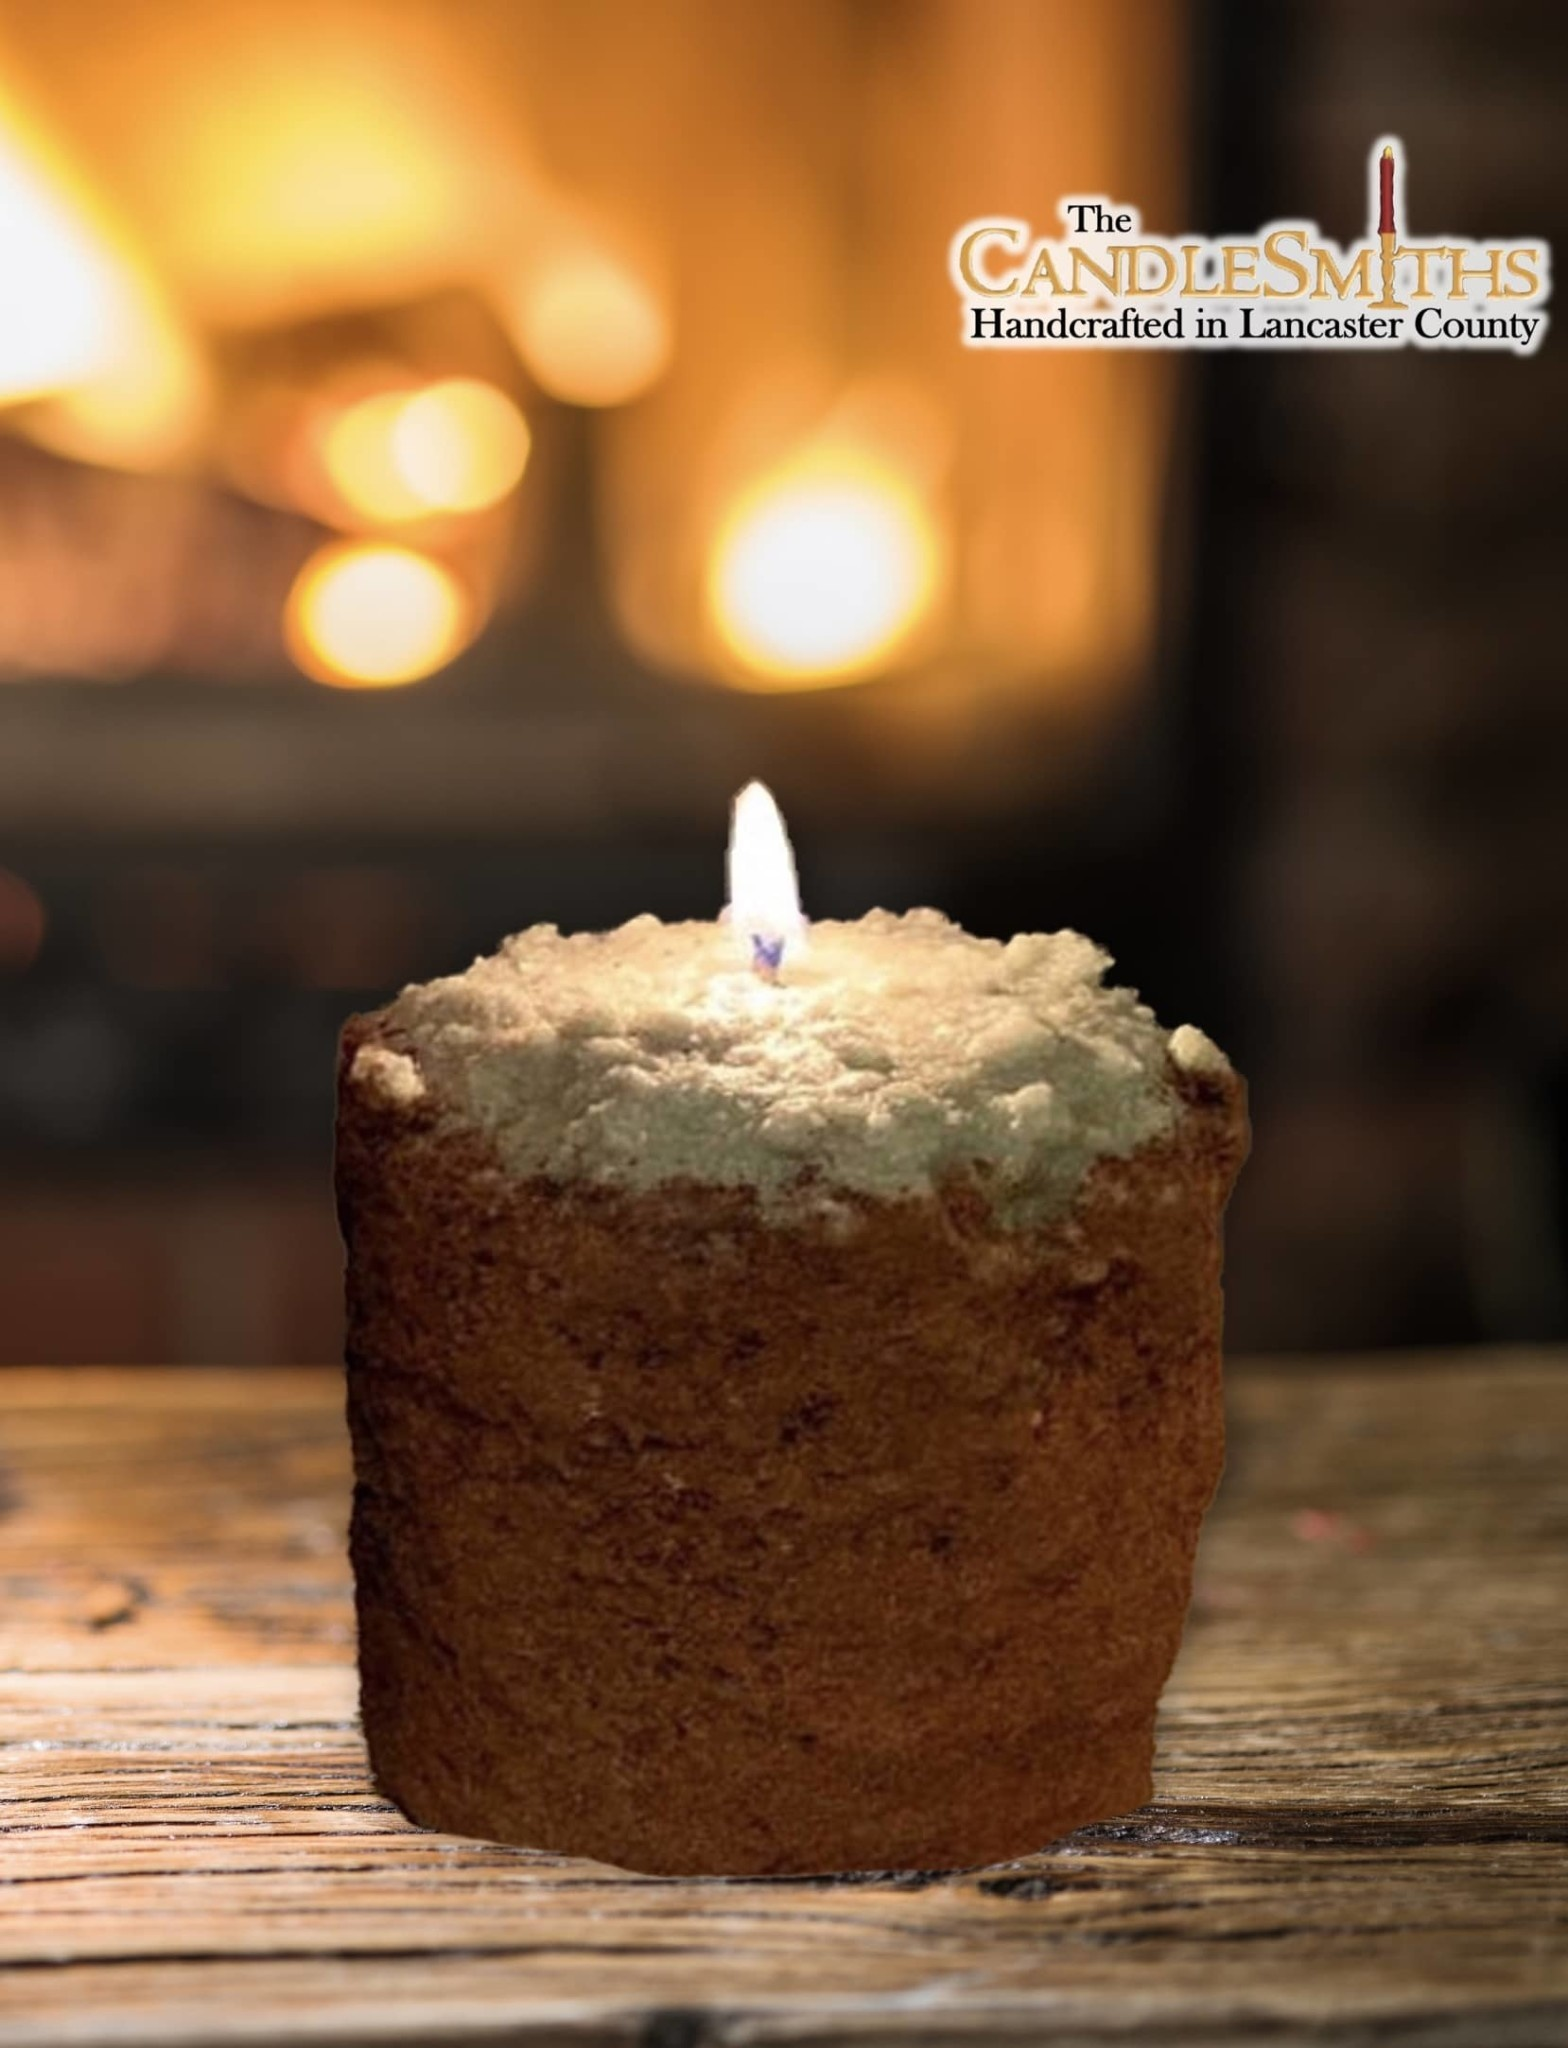 The Candlesmiths Country Garden Pillar Candle